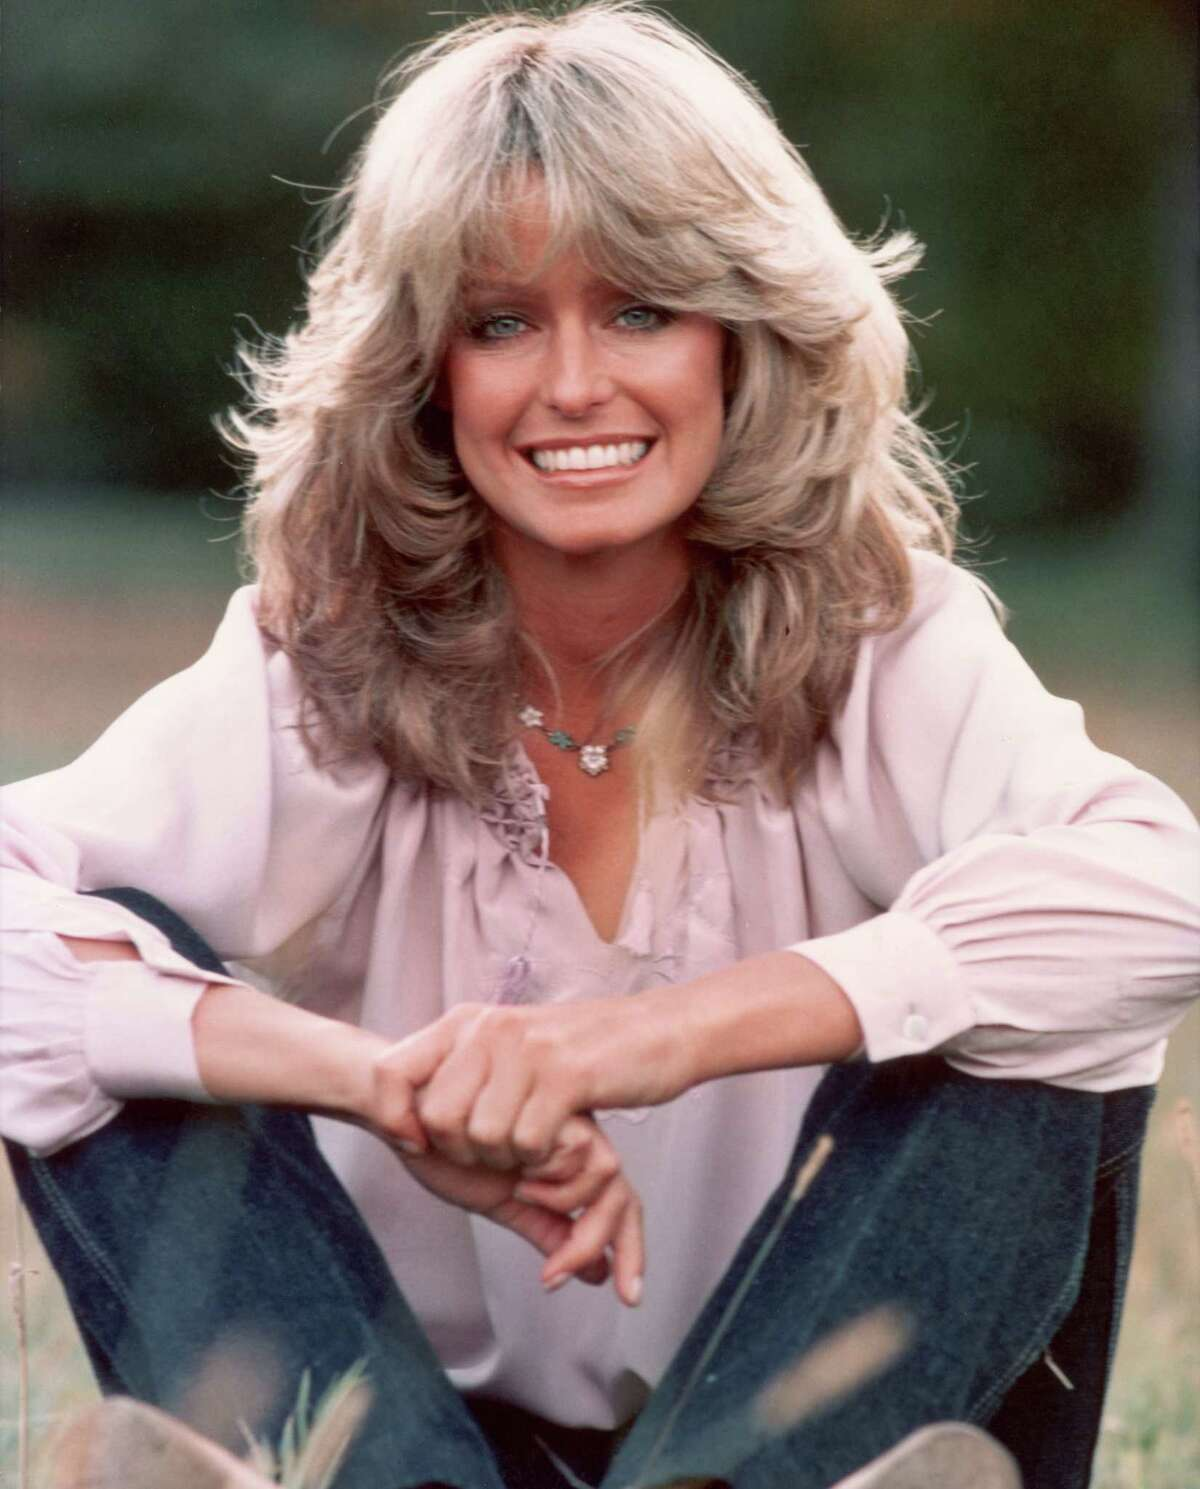 Publicity portrait of American actor and model Farrah Fawcett smiling while sitting outdoors in blue jeans and a mauve blouse. (Photo by Hulton Archive/Getty Images)